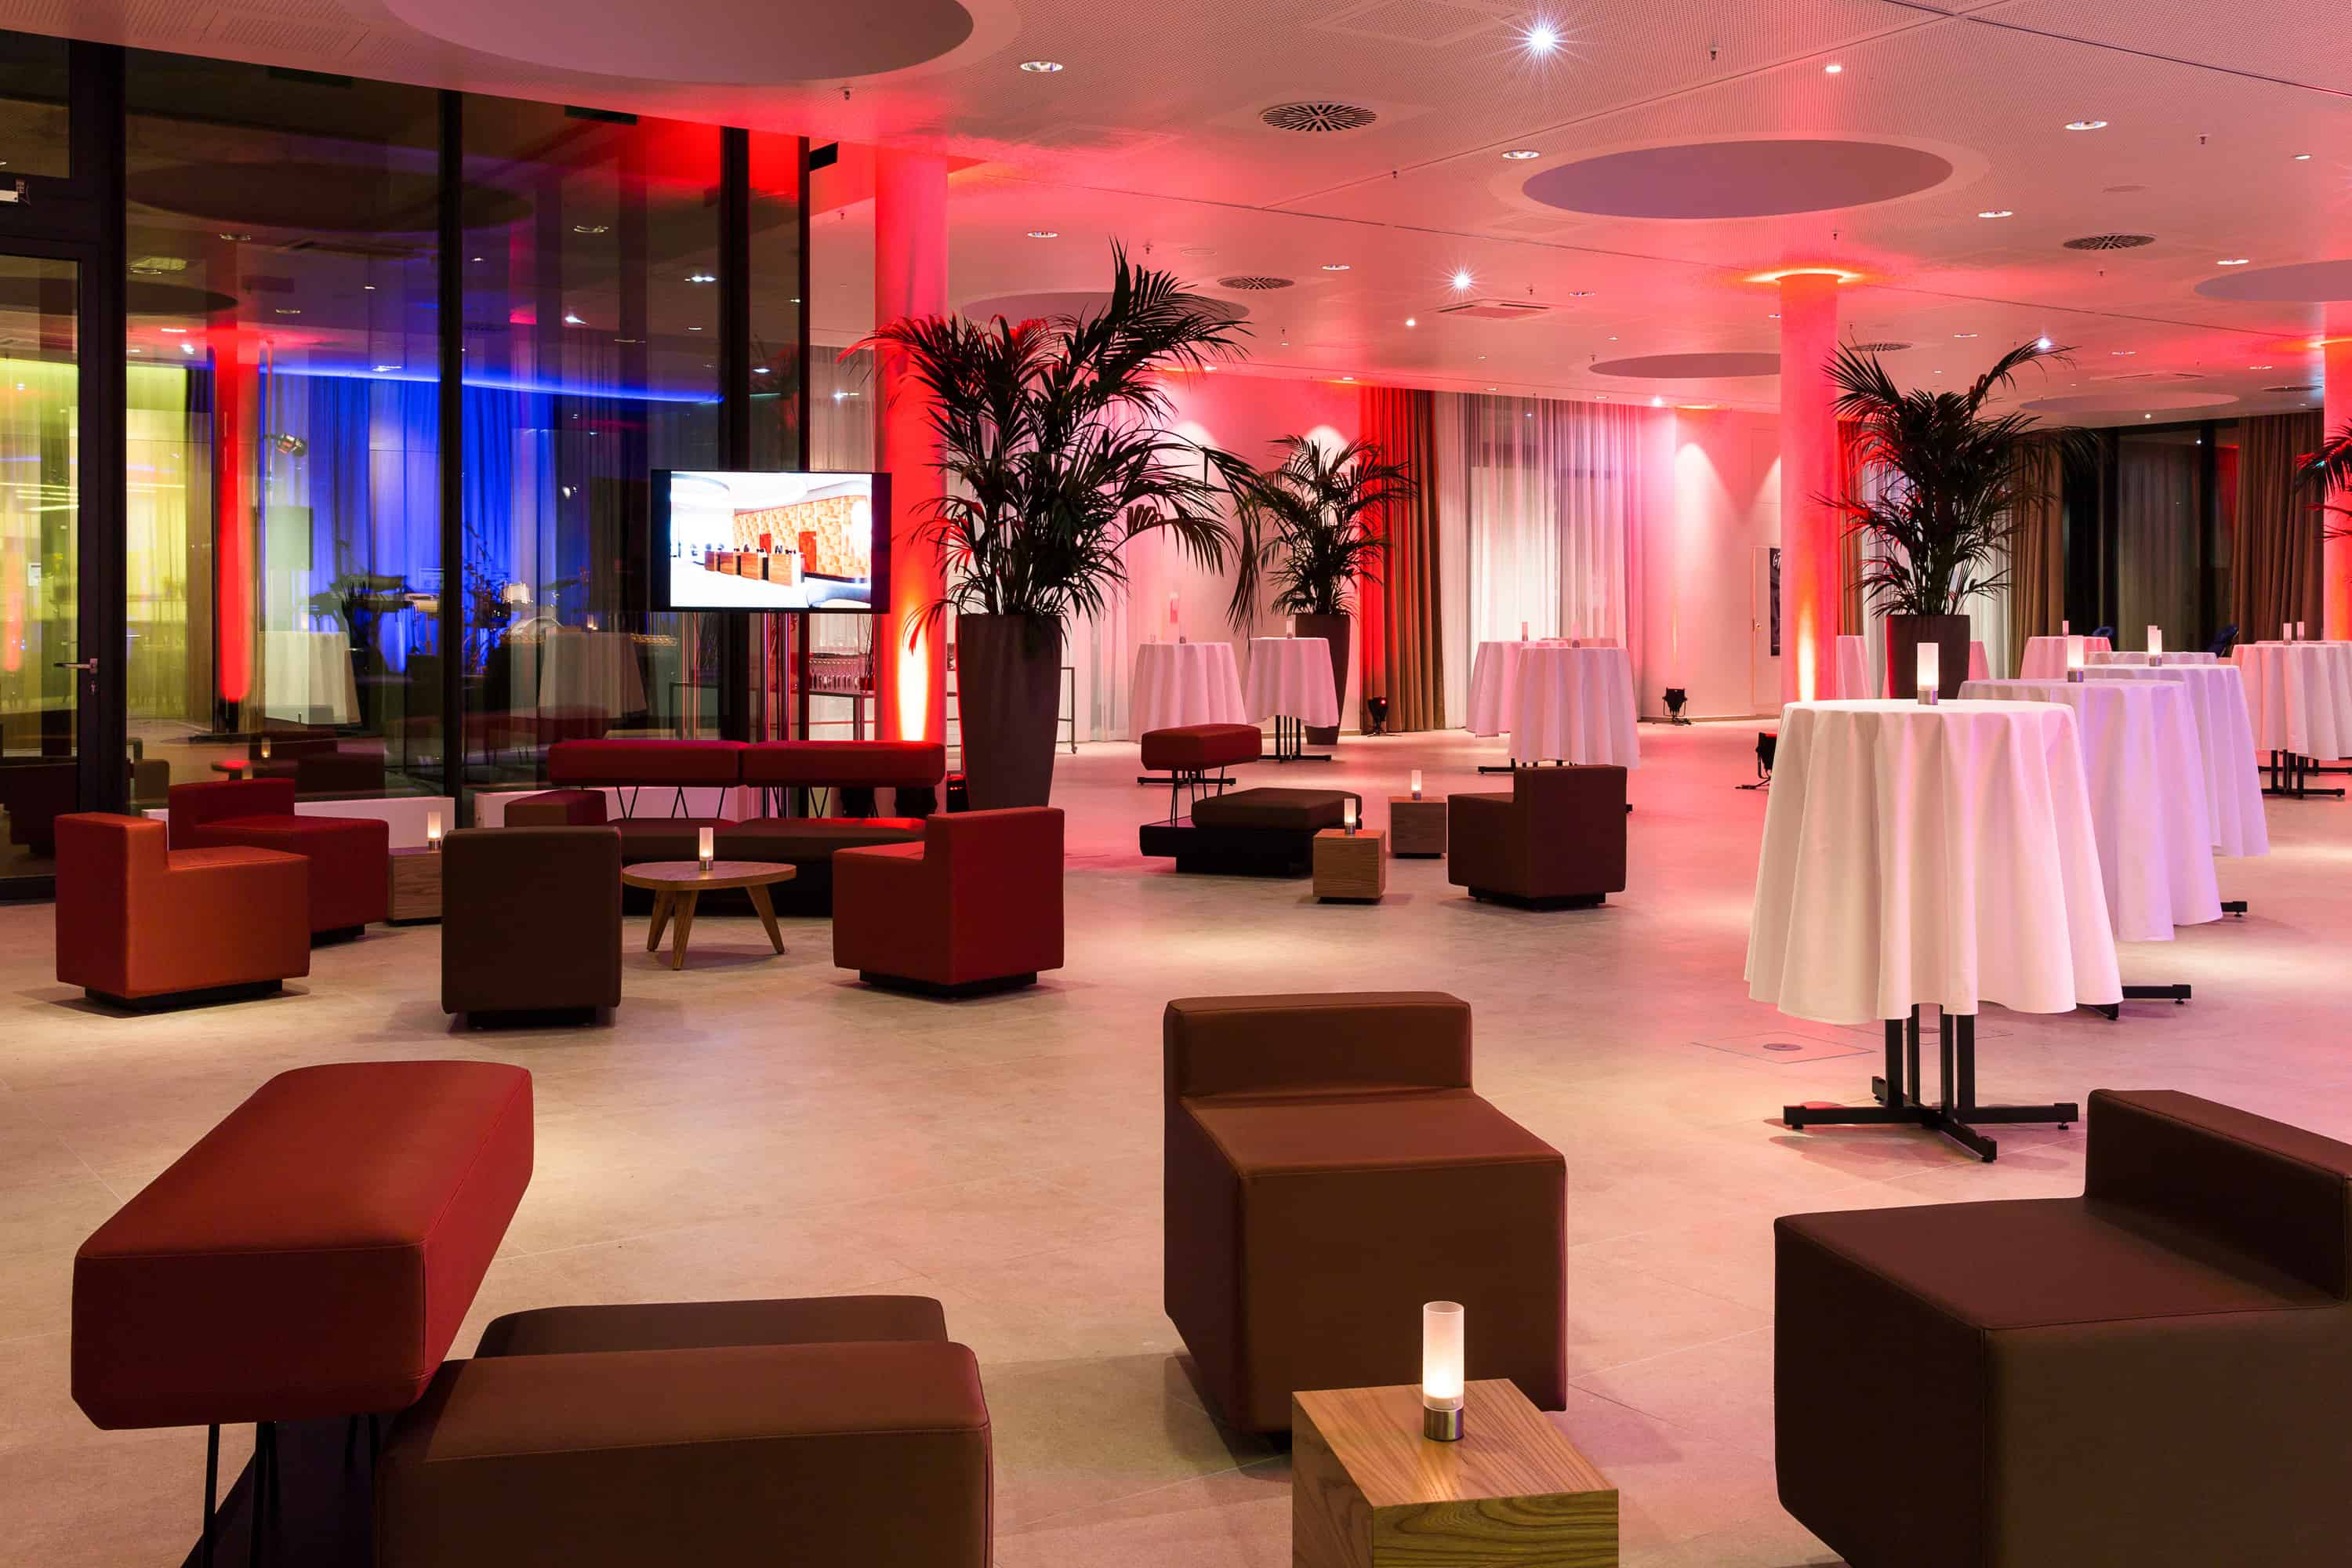 h-hotels_eventhof-03-h4-hotel-muenchen-messe_L (max. 3000px) _6a157005